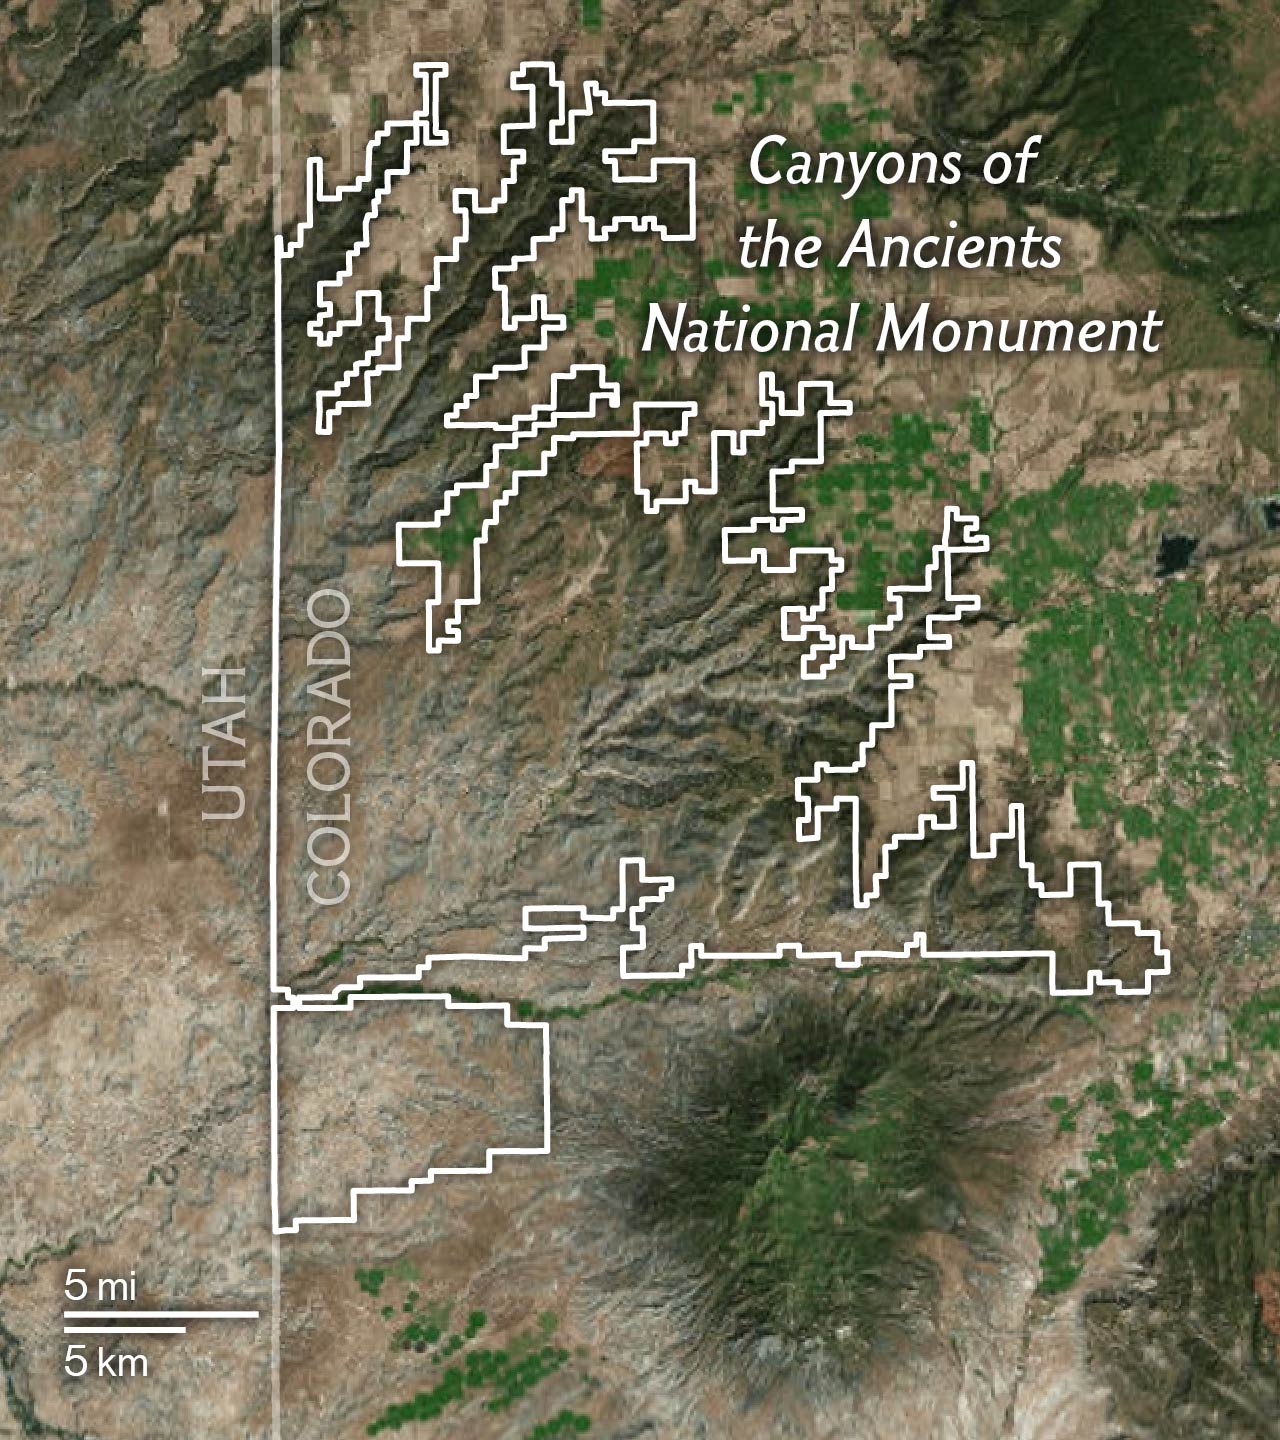 Maps Explain The National Monuments Under Review By Trump - Archaeological sites in the southwest us map